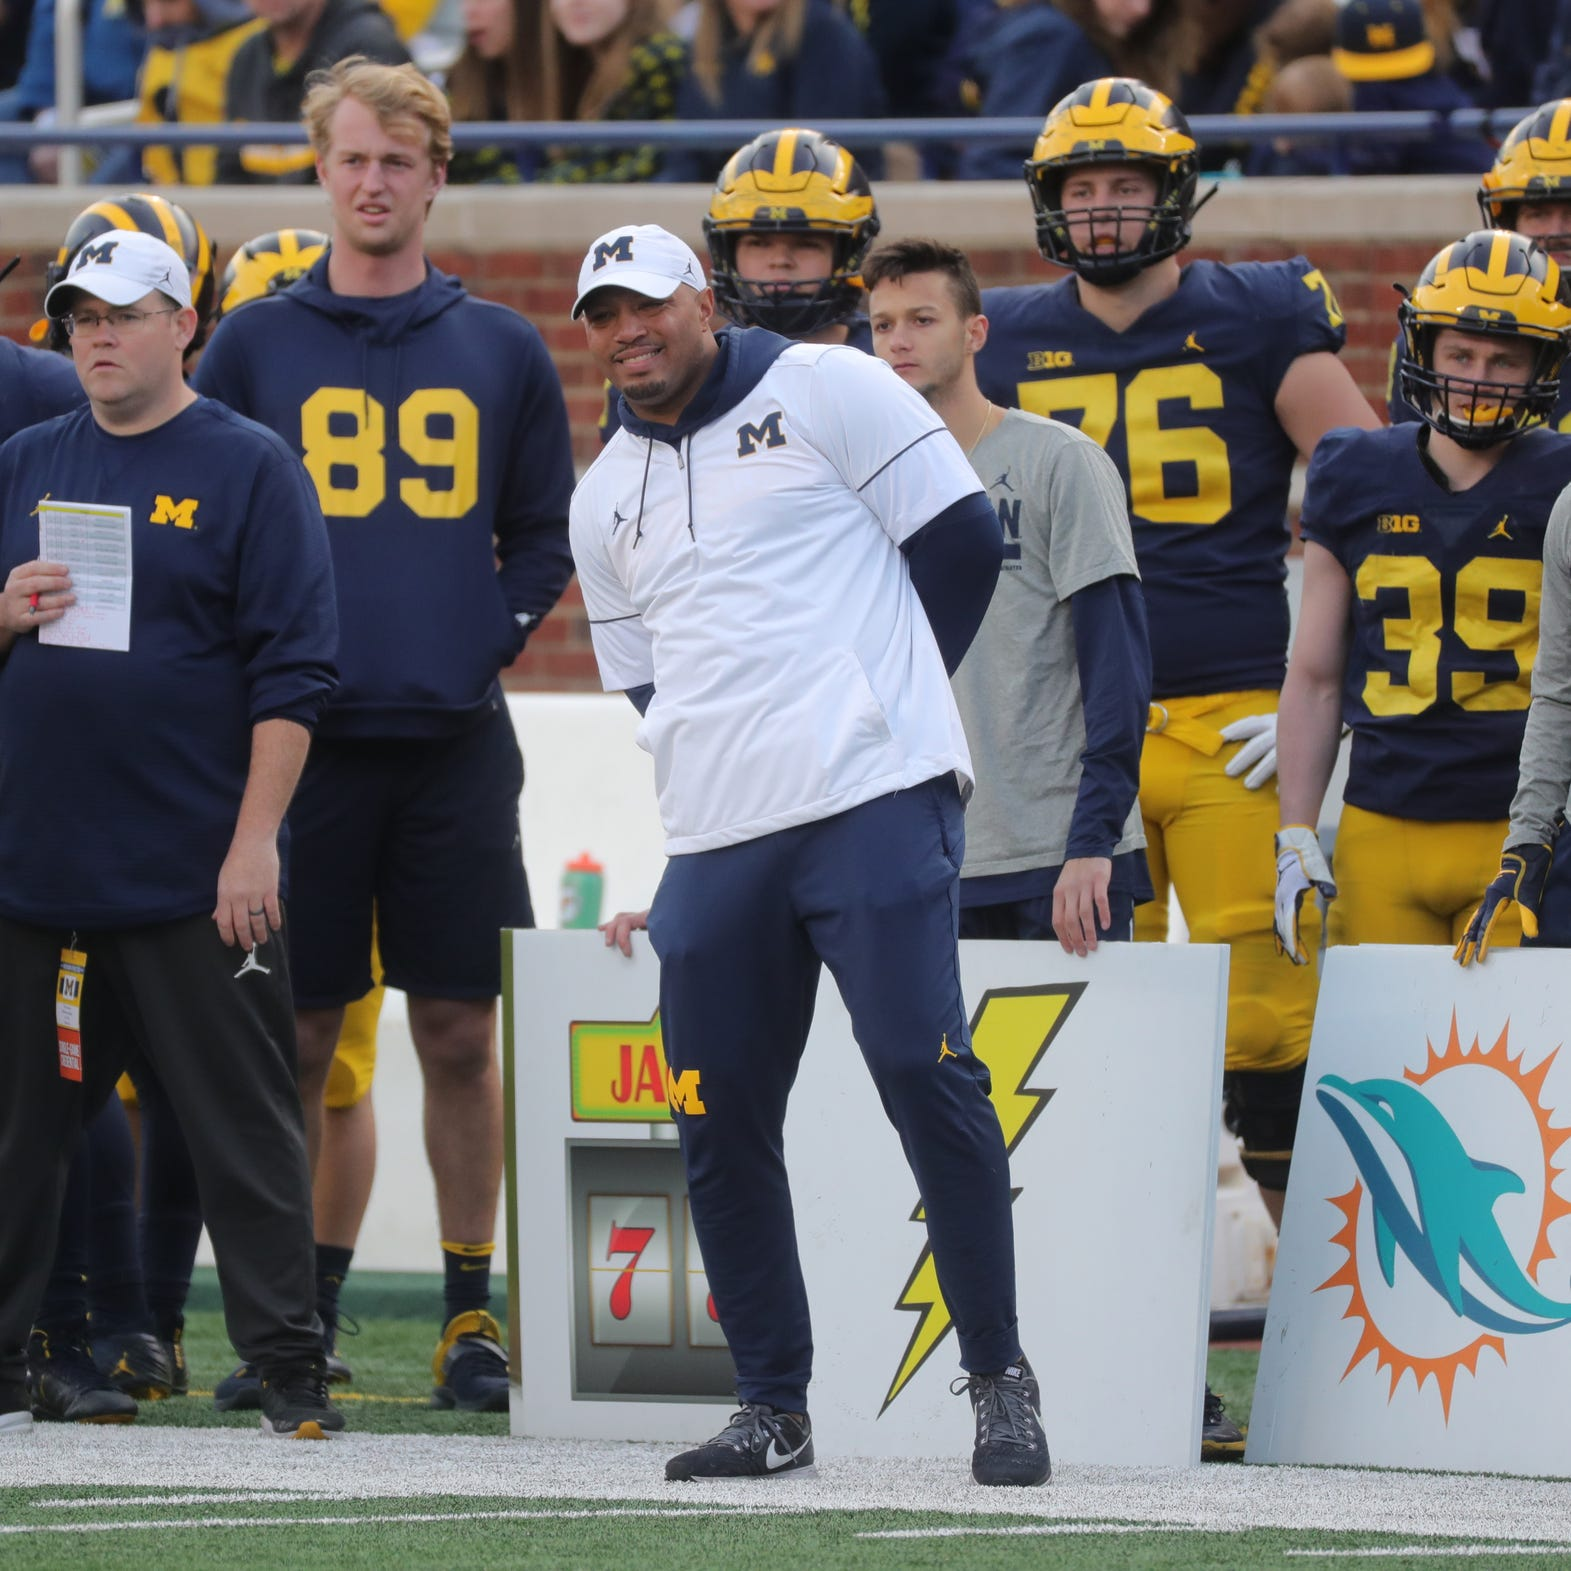 What will Michigan football's base offense look like under Josh Gattis?